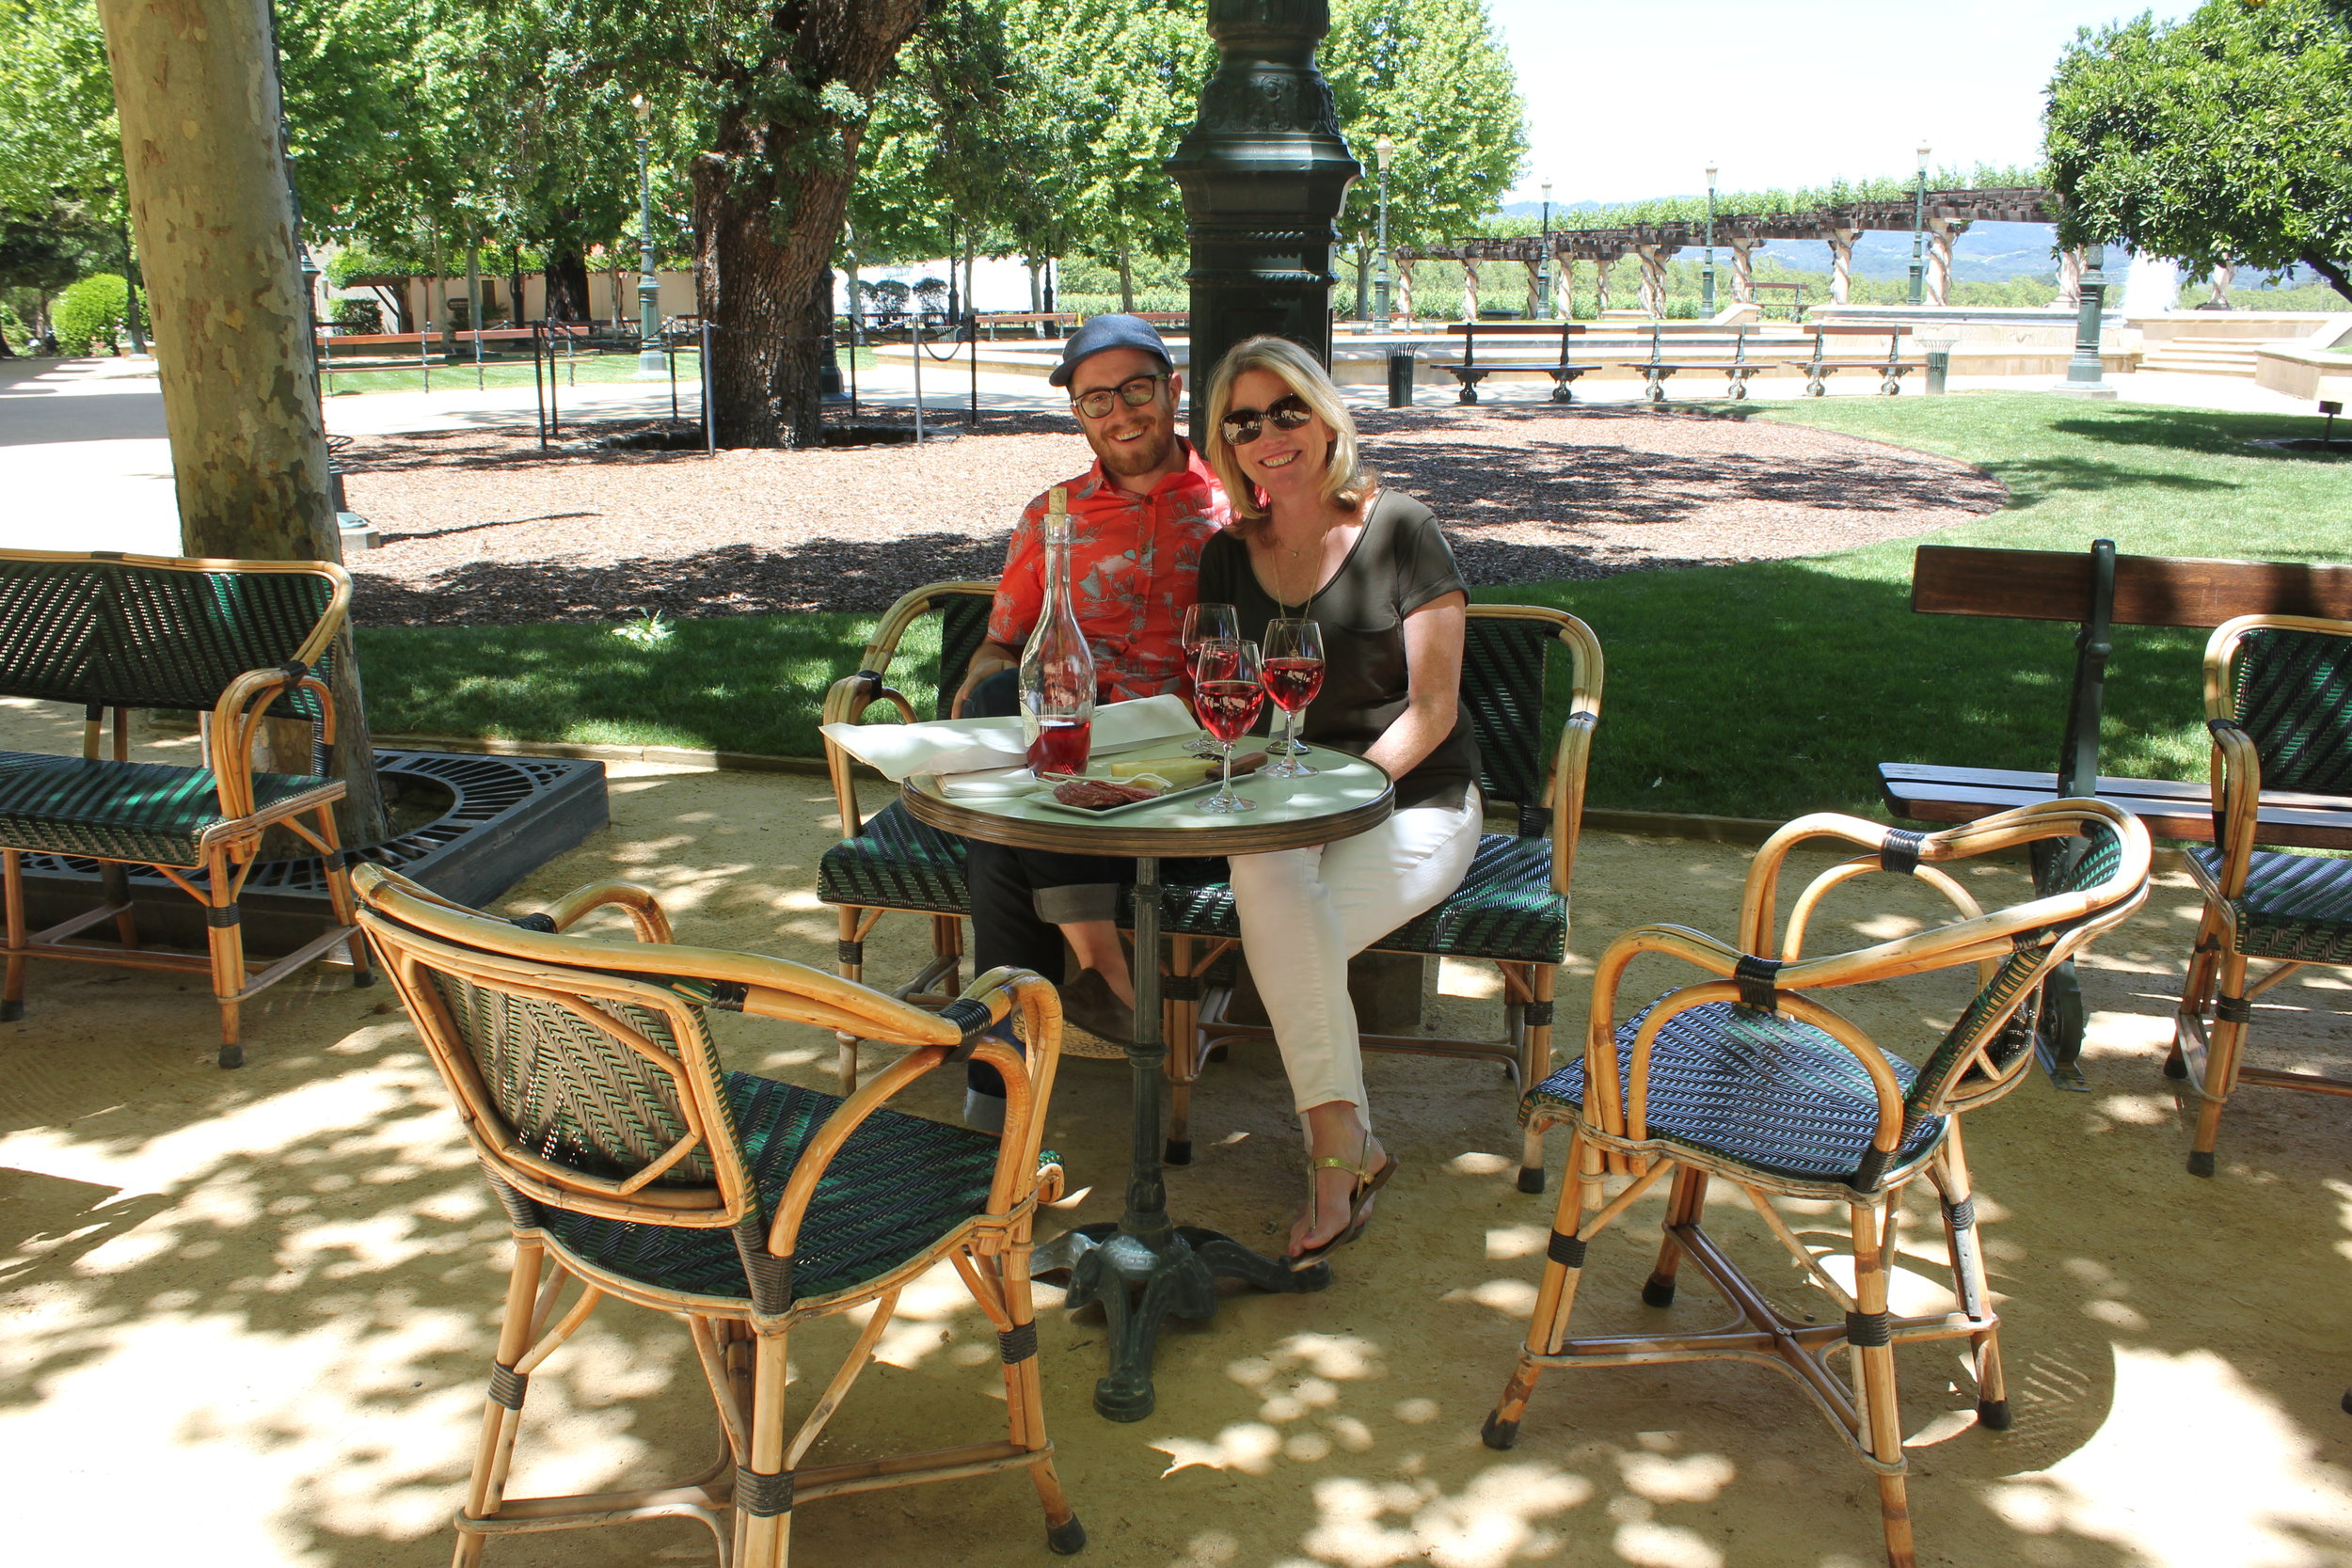 Easy sipping at Inglenook Winery in Napa